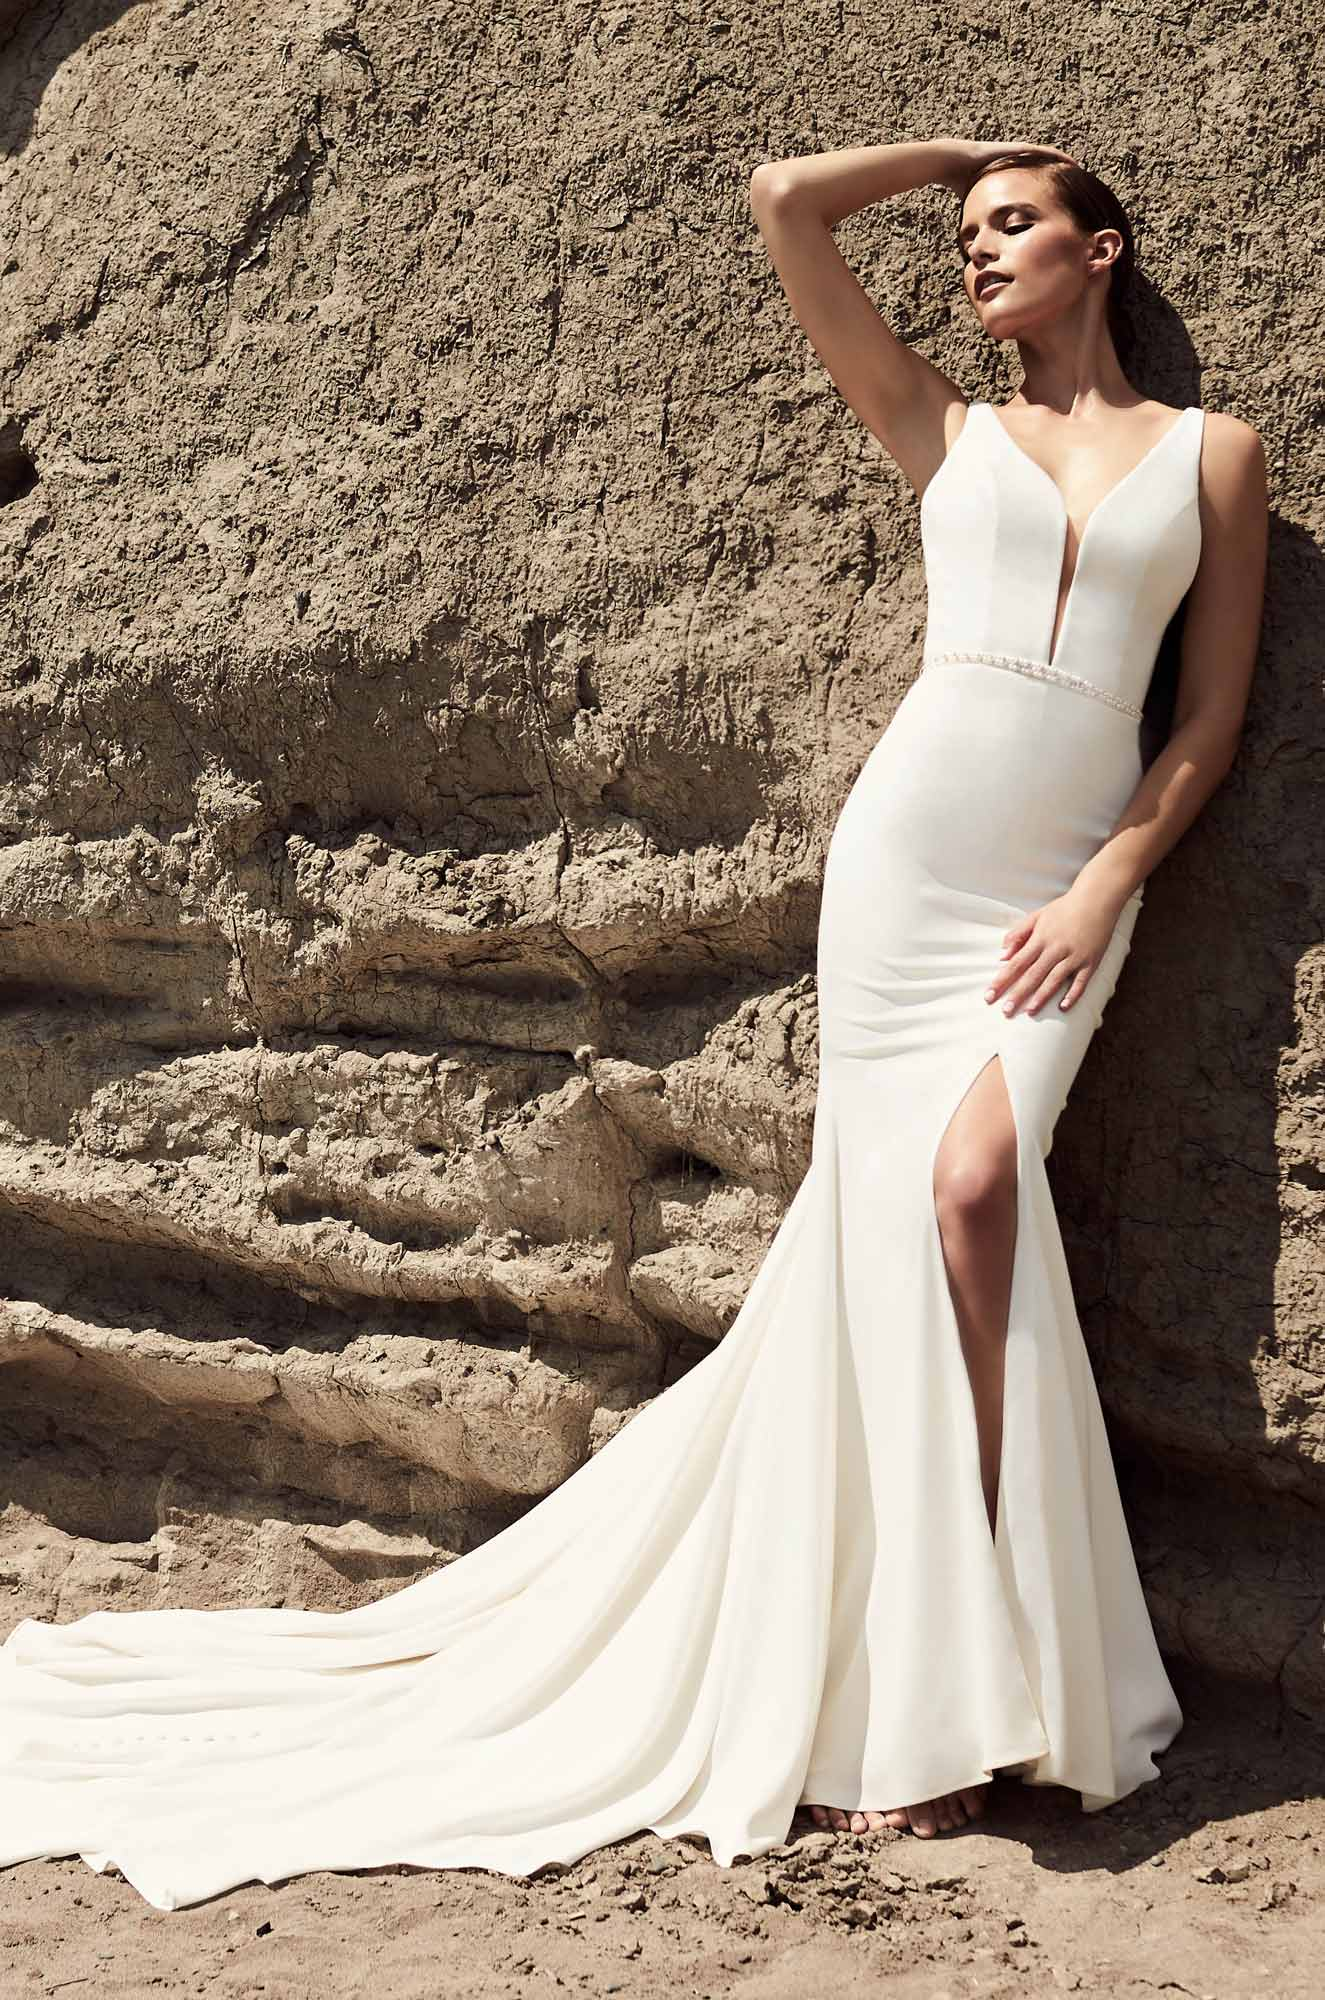 Skirt Slit Wedding Dress – Style #2107 | Mikaella Bridal